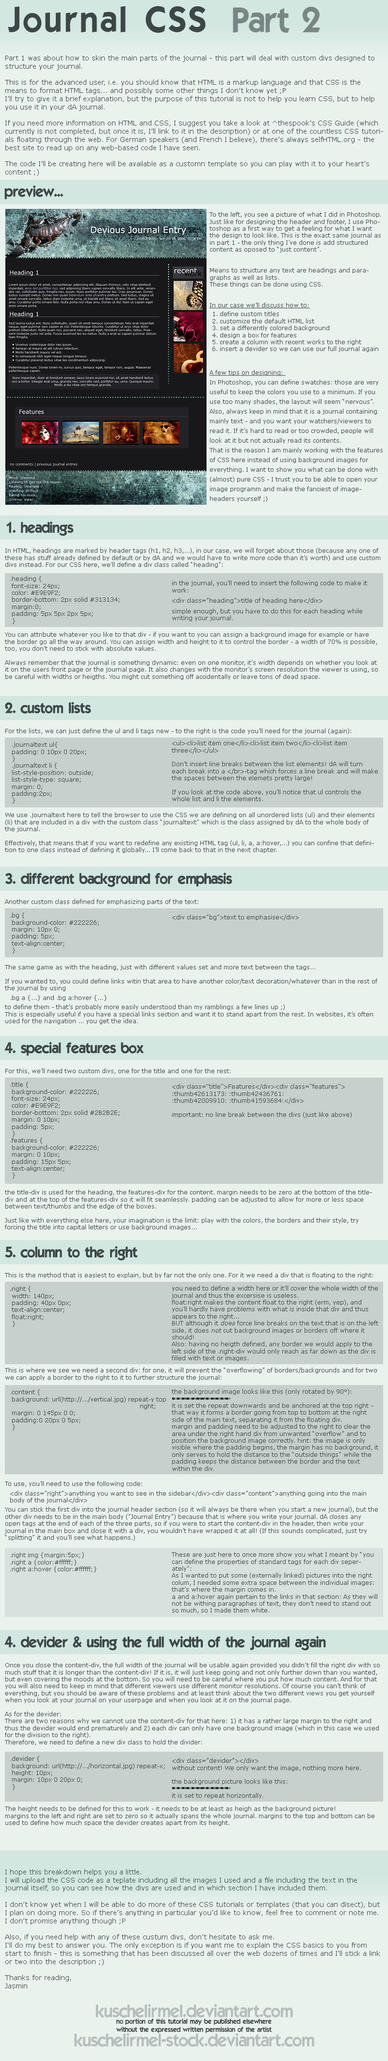 Journal CSS - Part 2 by kuschelirmel-stock